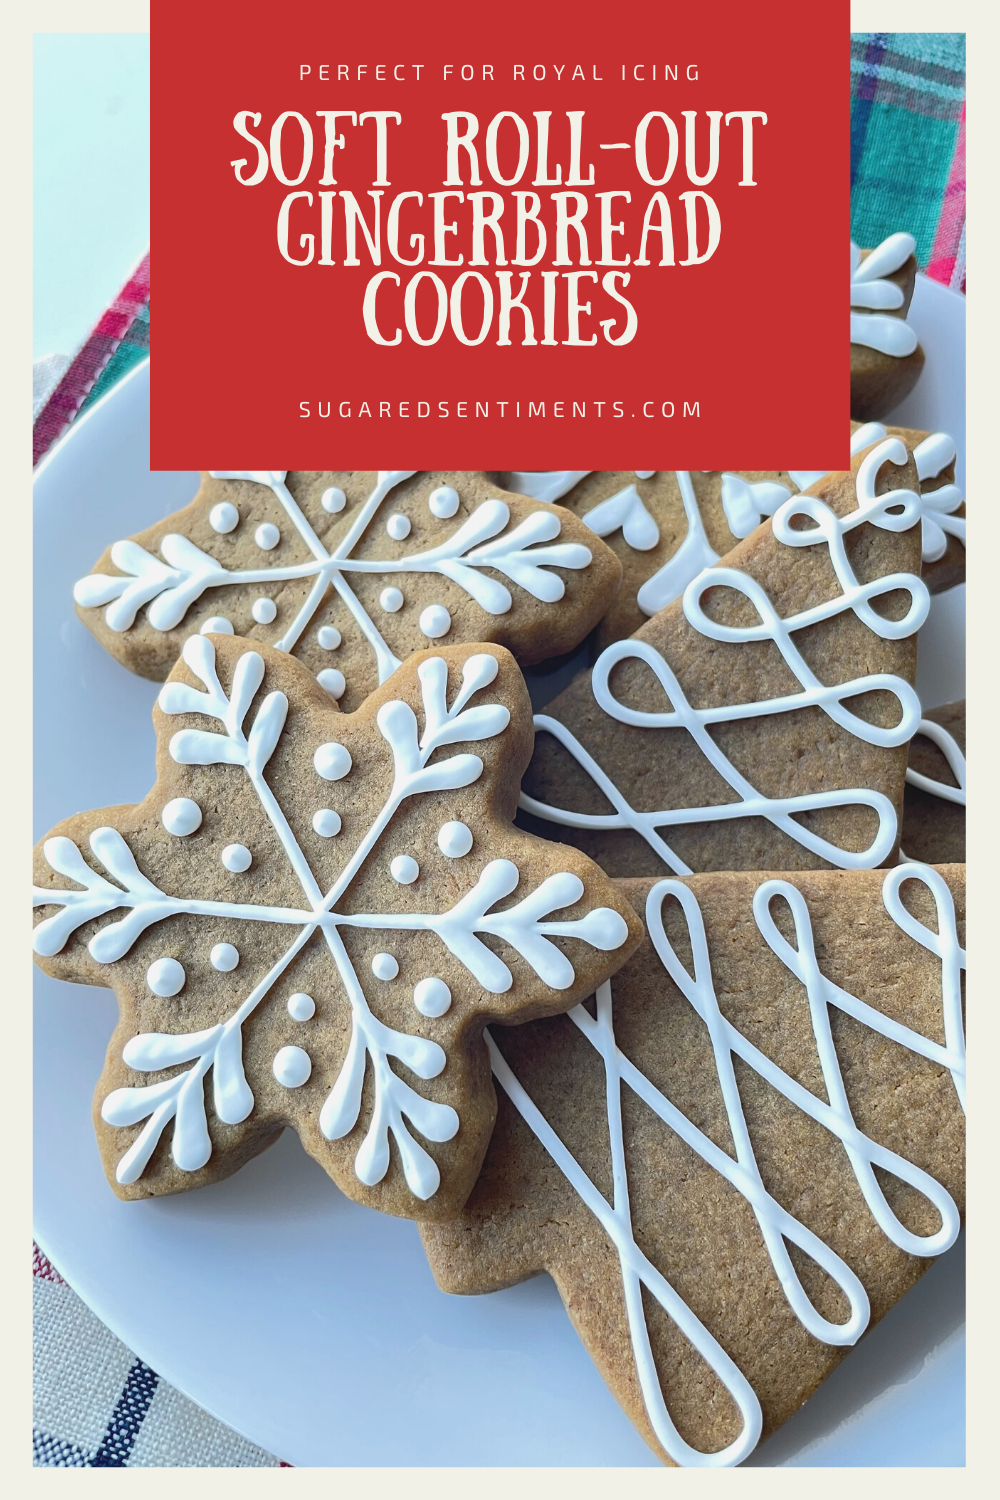 Soft, flavorful Gingerbread Cookies with minimal spread perfect for Royal Icing. A perfect recipe to add to your holiday traditions!